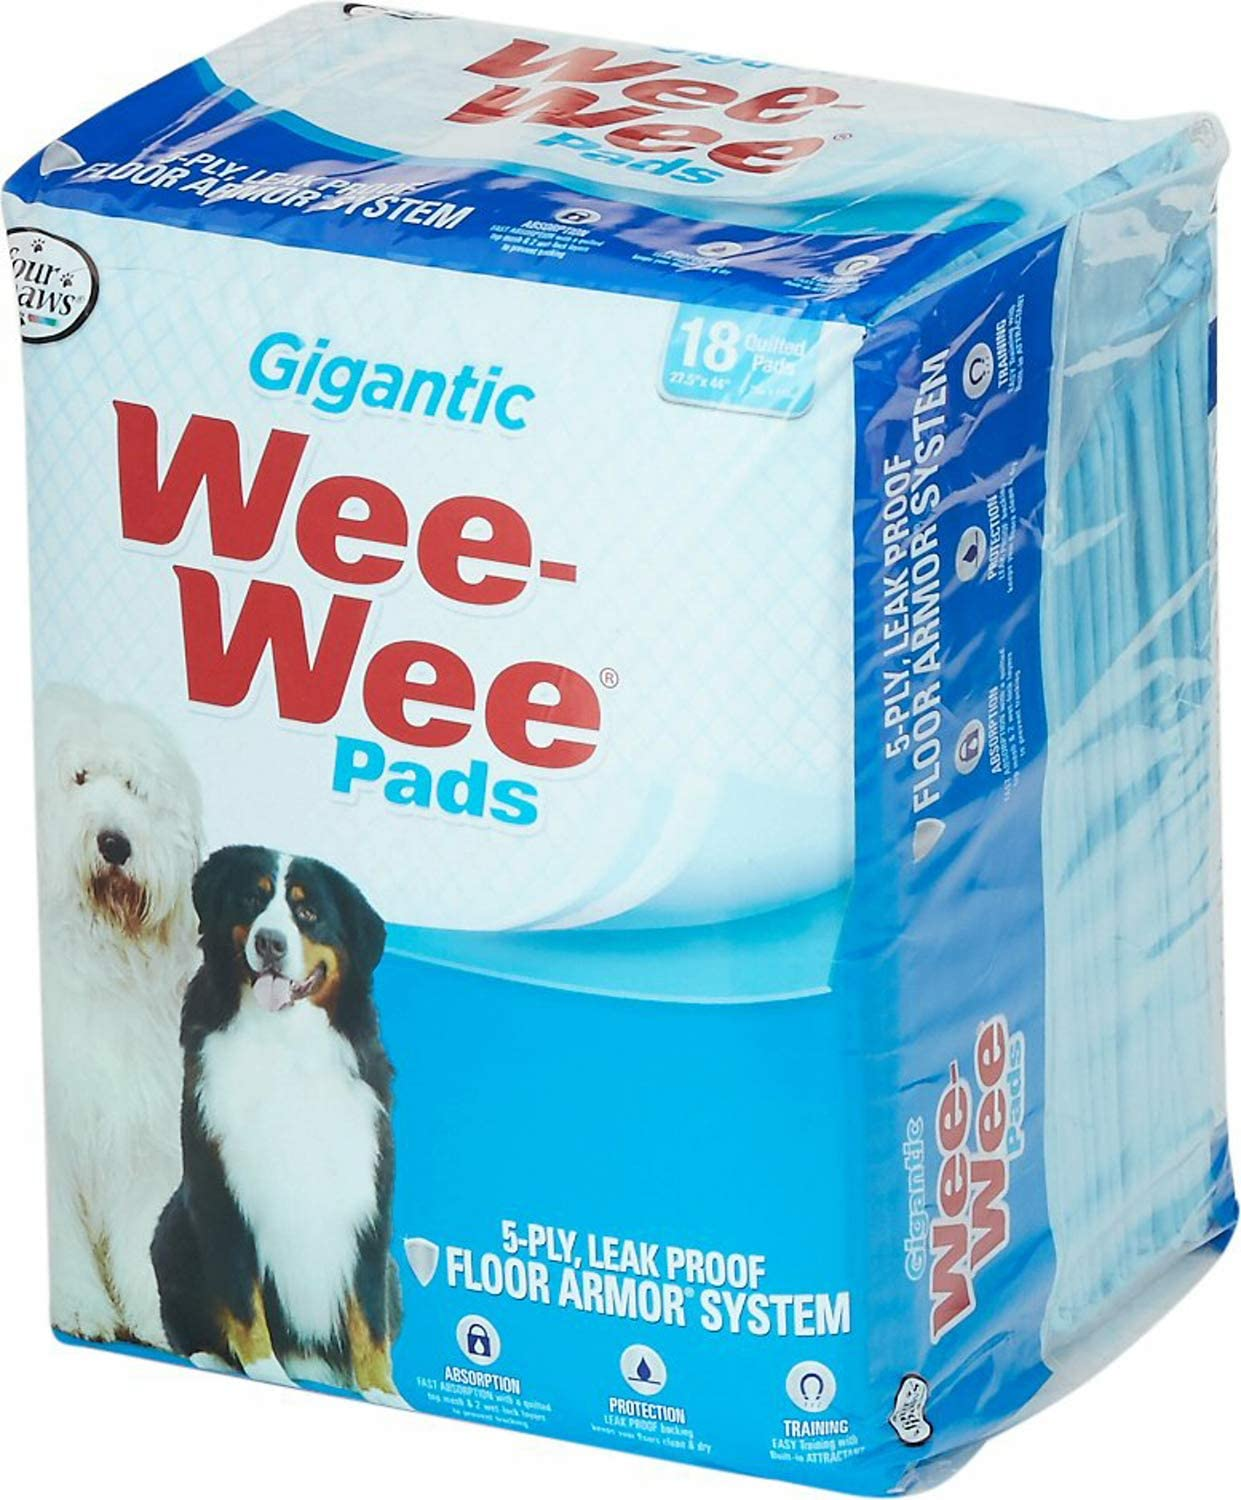 Four Paws Wee-Wee Pads, Gigantic, 18 per Pack